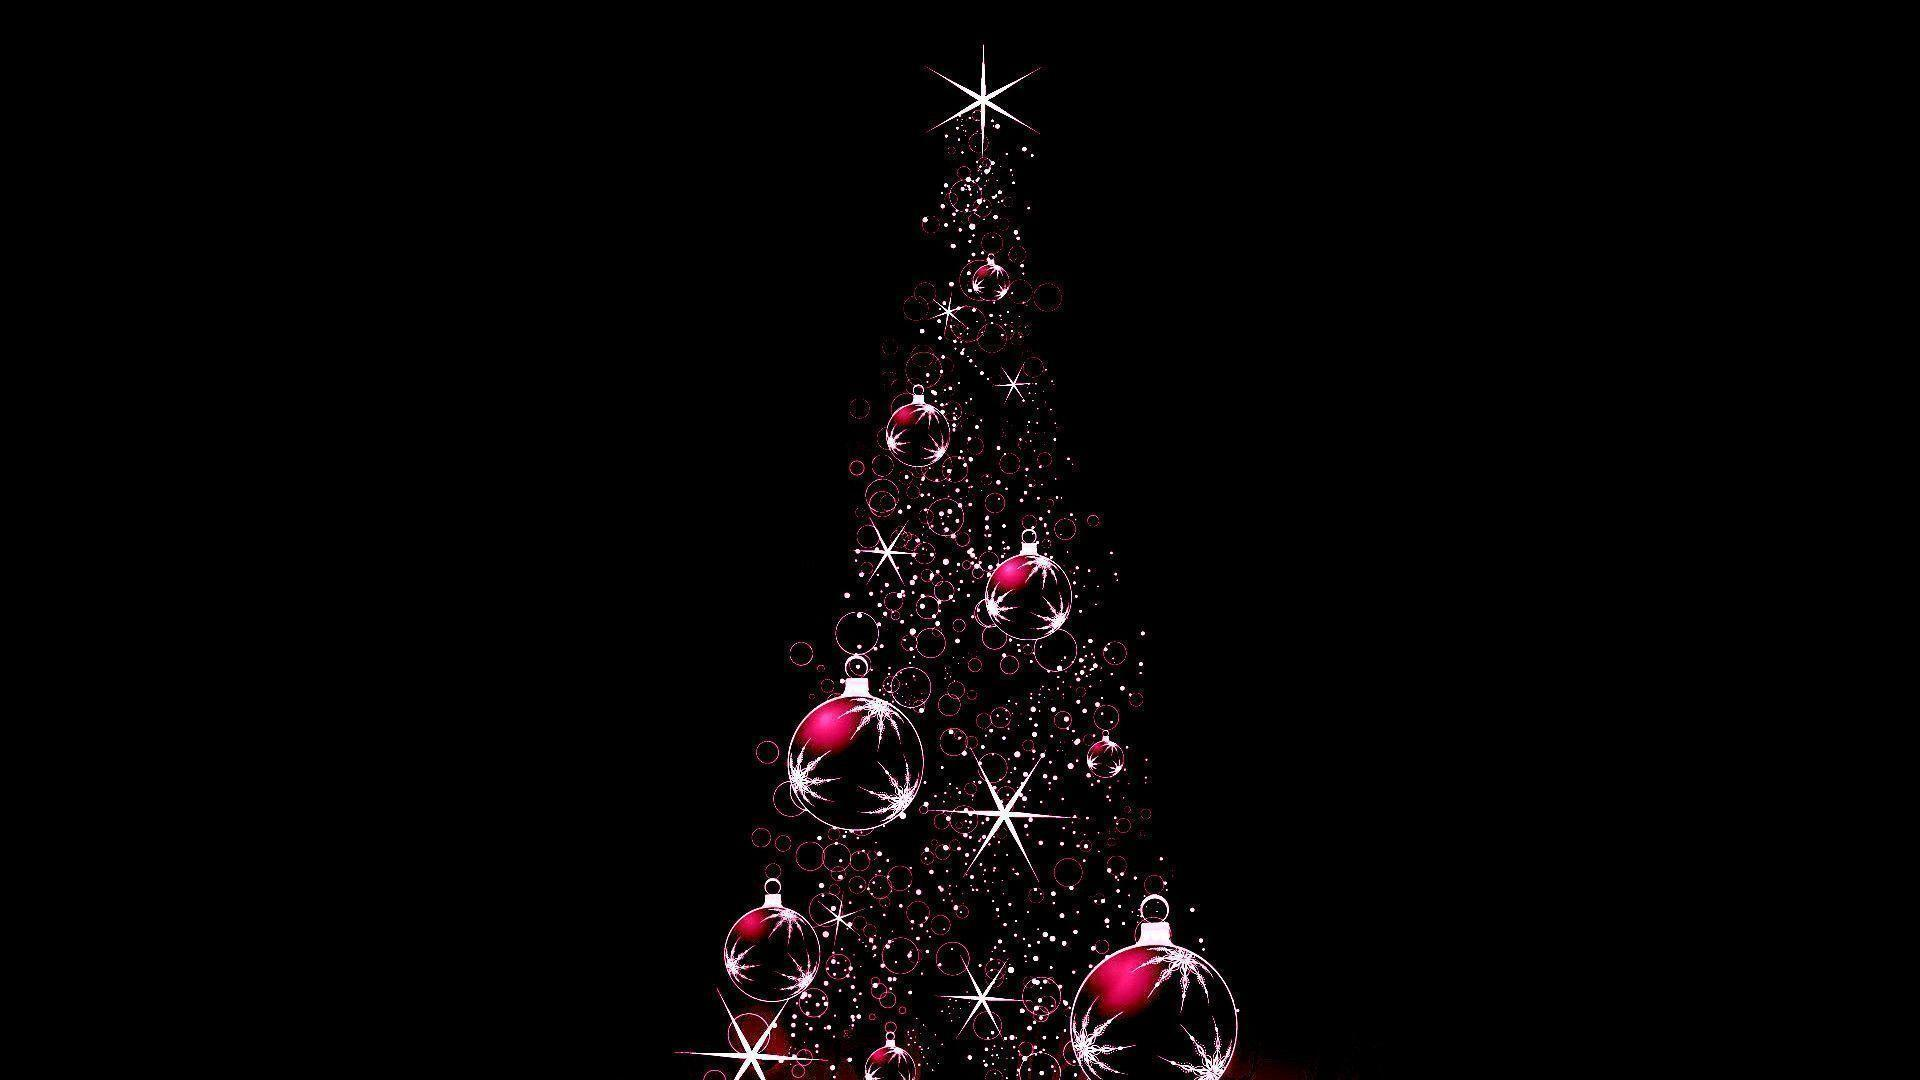 wallpapers xmas tree - wallpaper cave